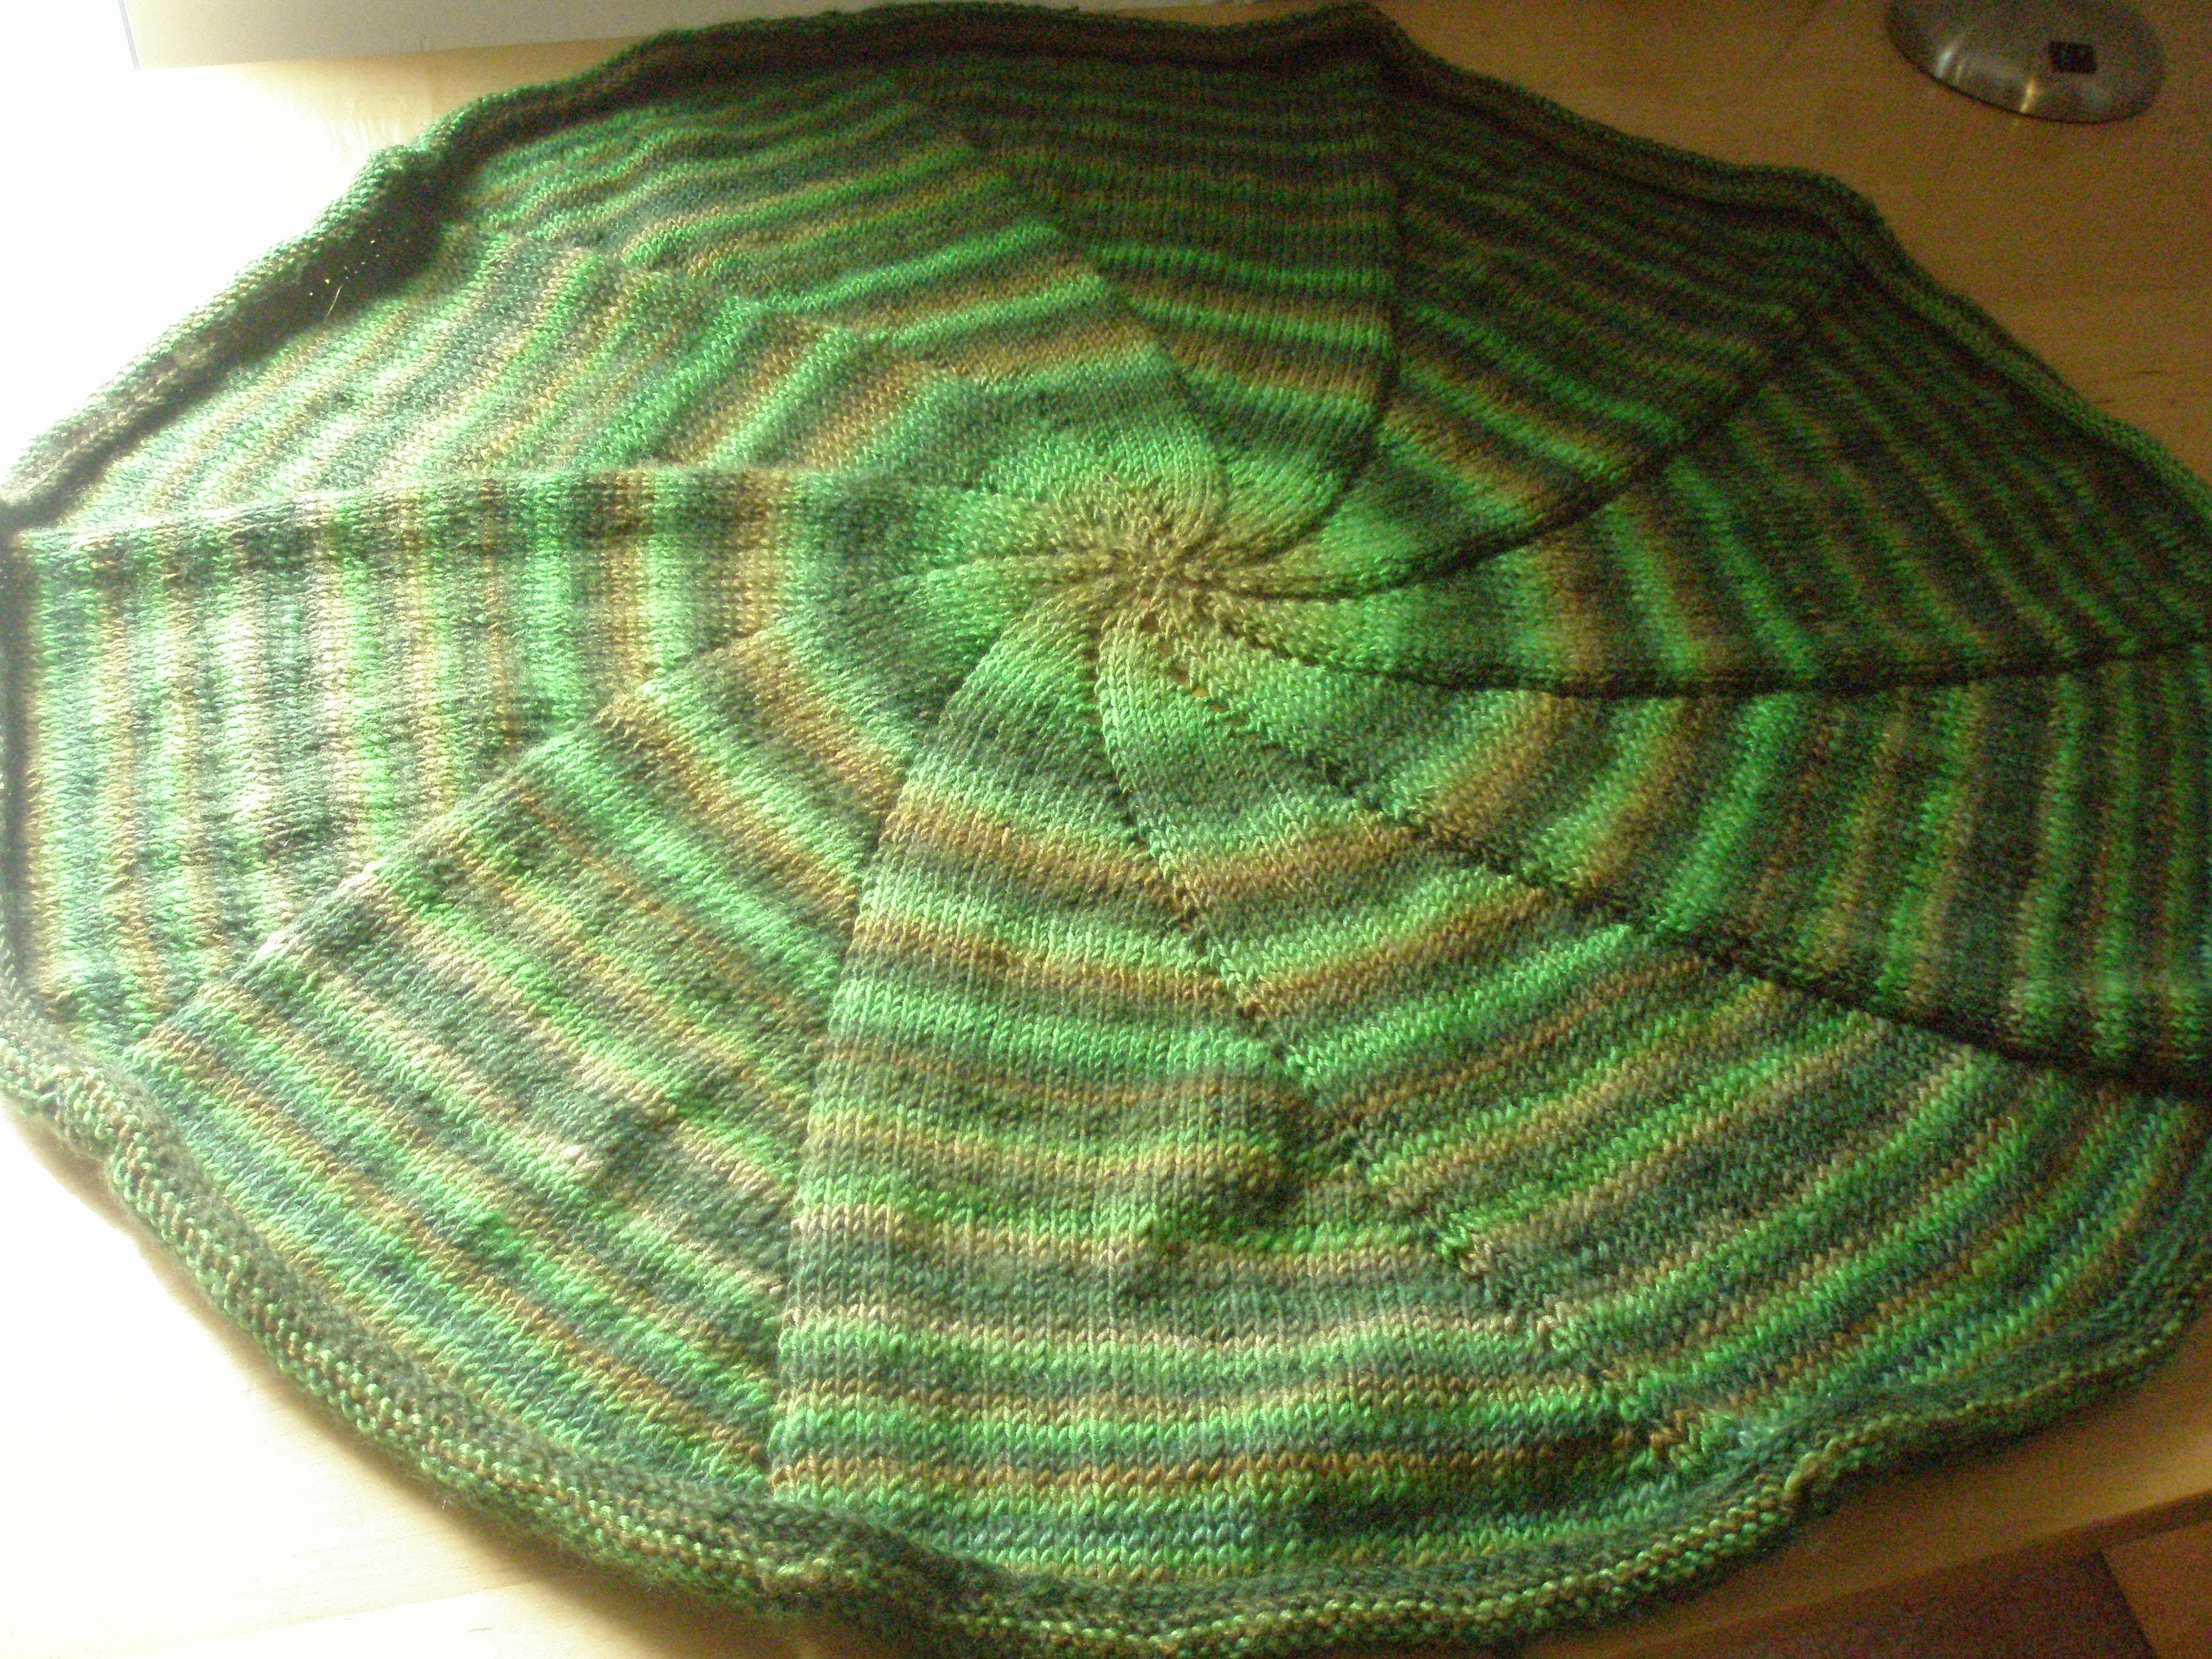 Circular Blanket Knitted In The Round 5 Steps With Pictures Instructables